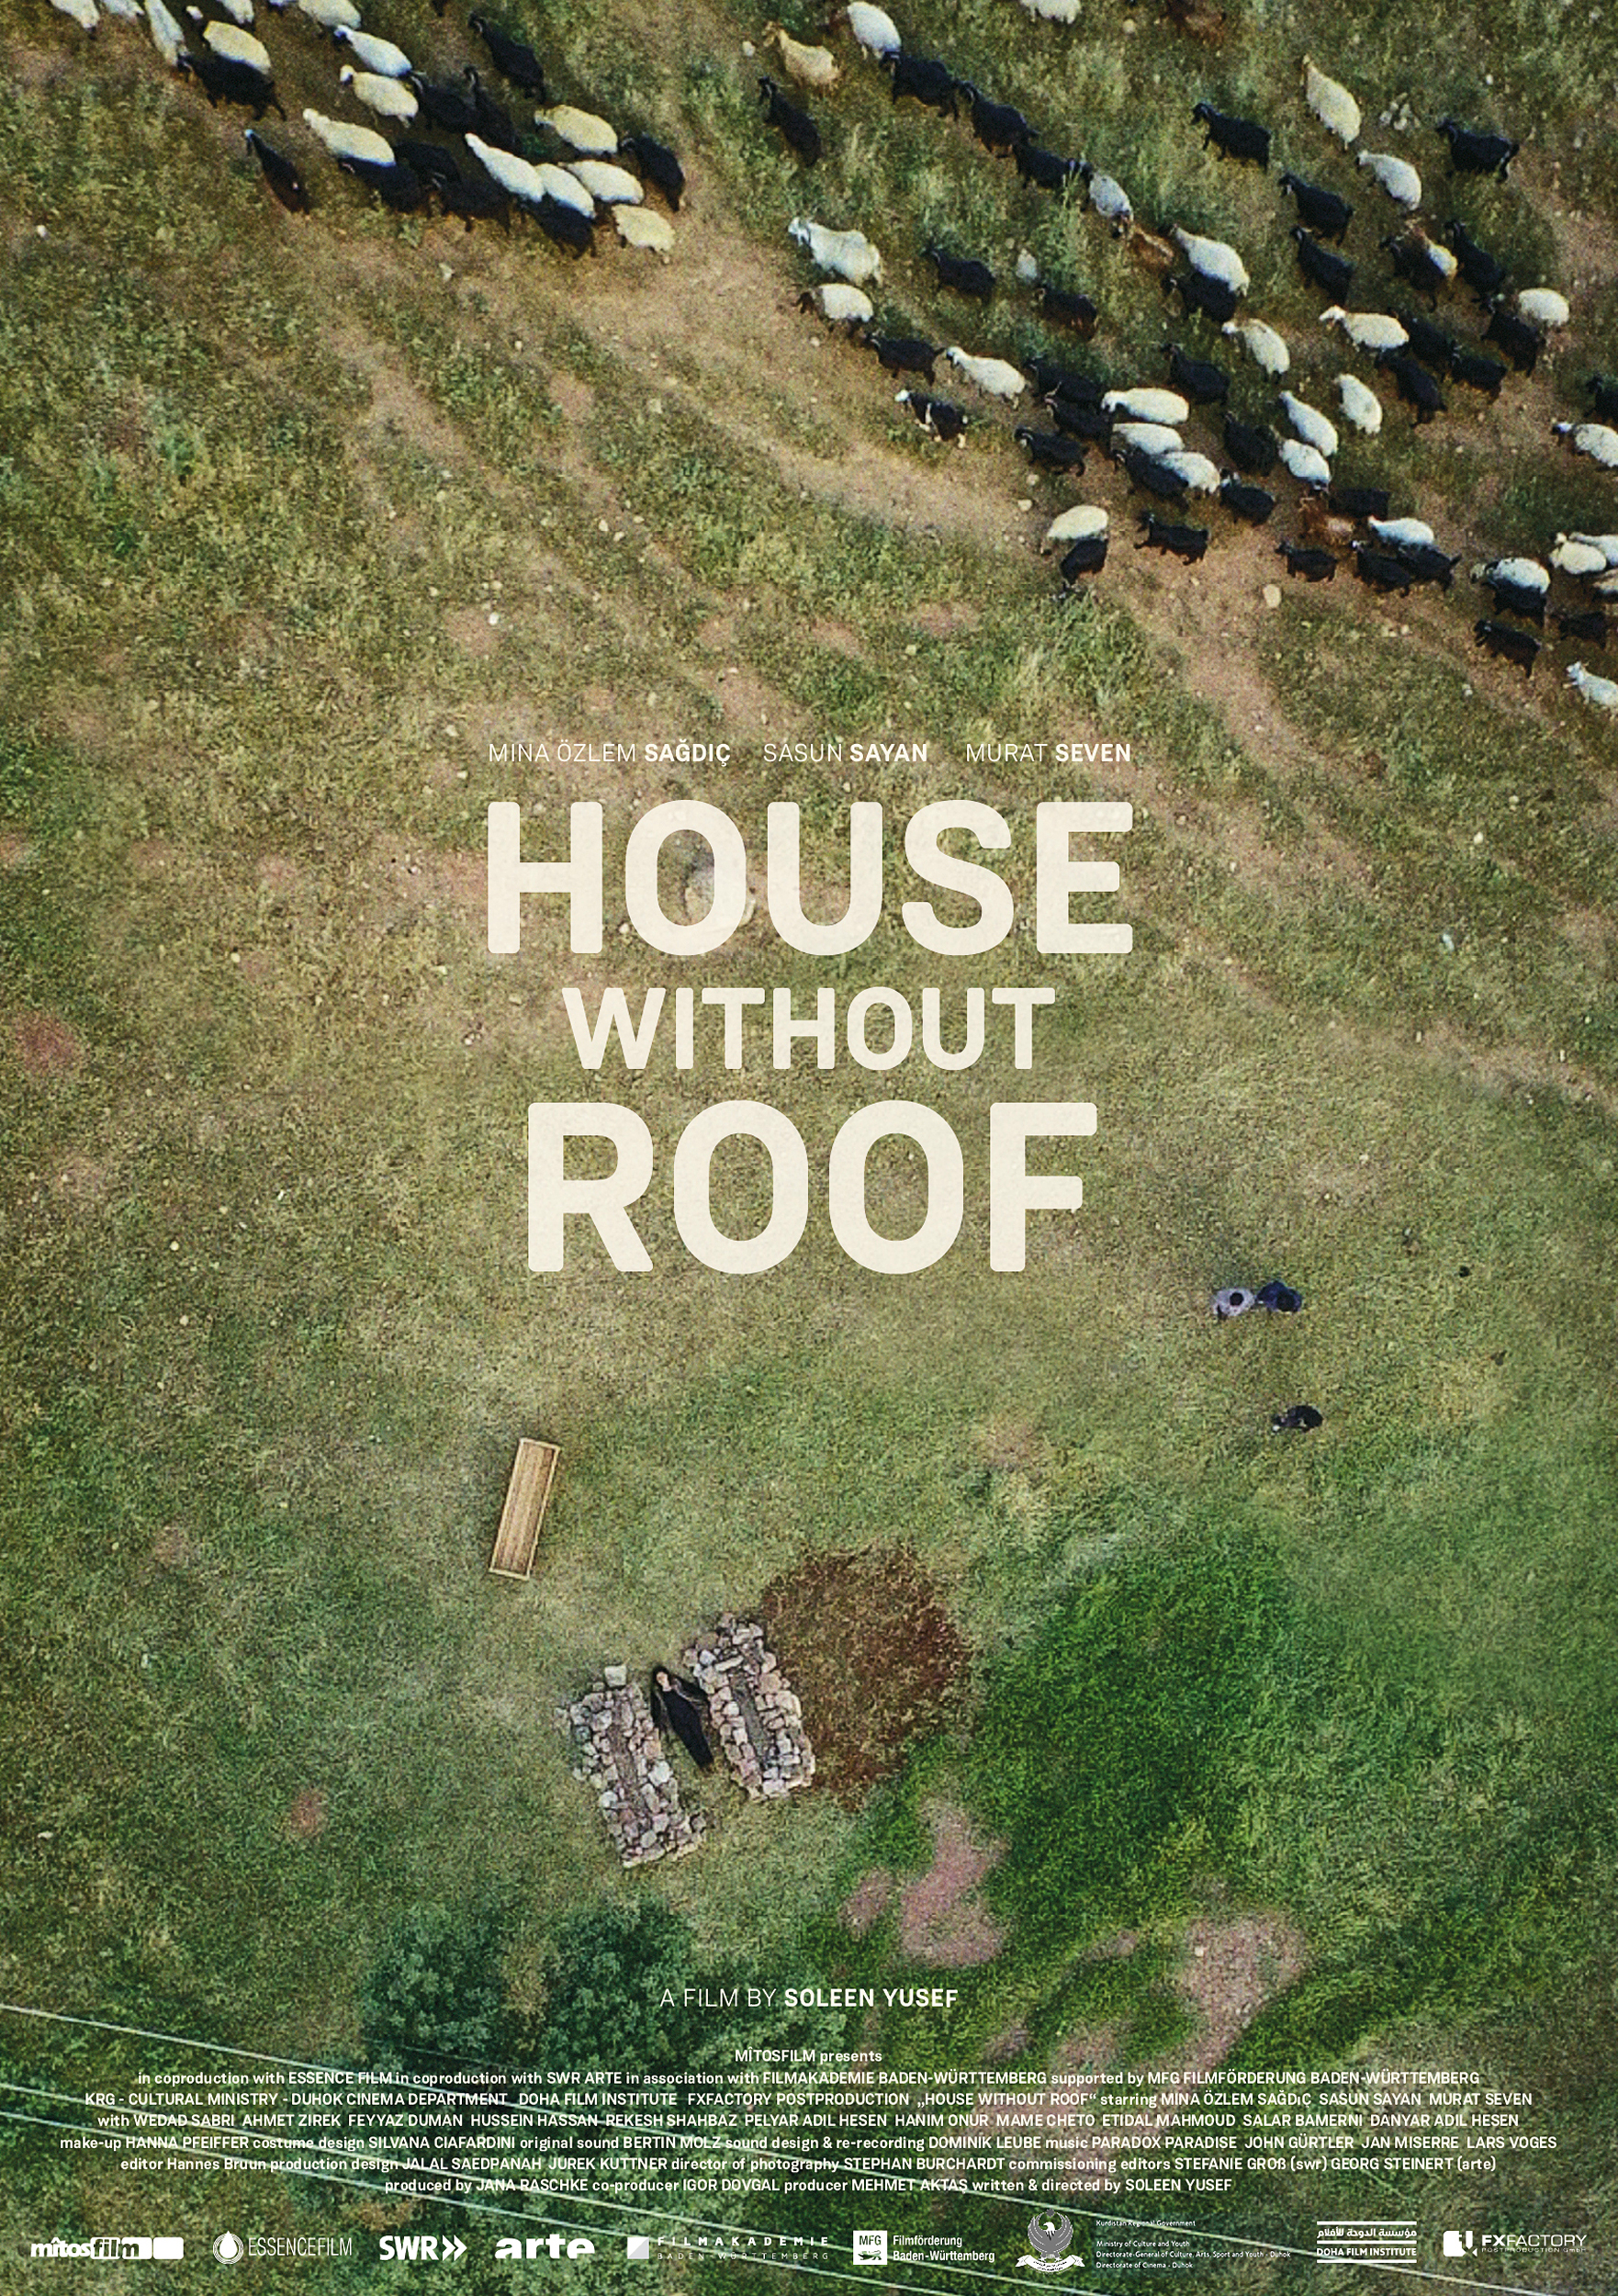 House-without-roof_poster_ENG_Essence-Film_2500.jpg